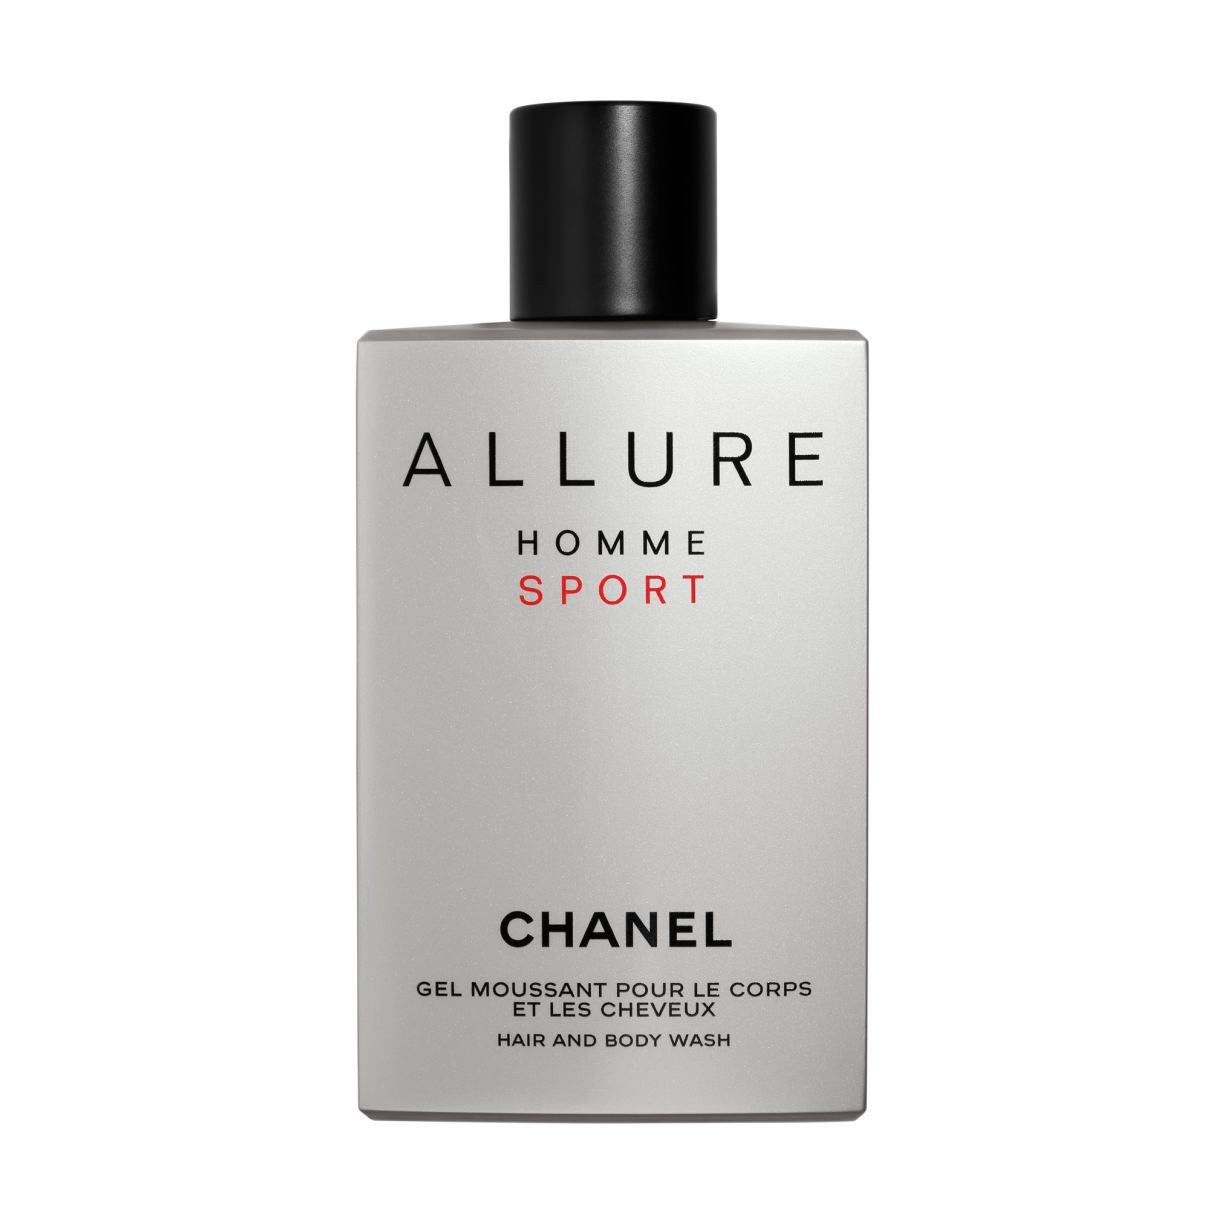 ALLURE HOMME SPORT DOUCHEGEL 200ml